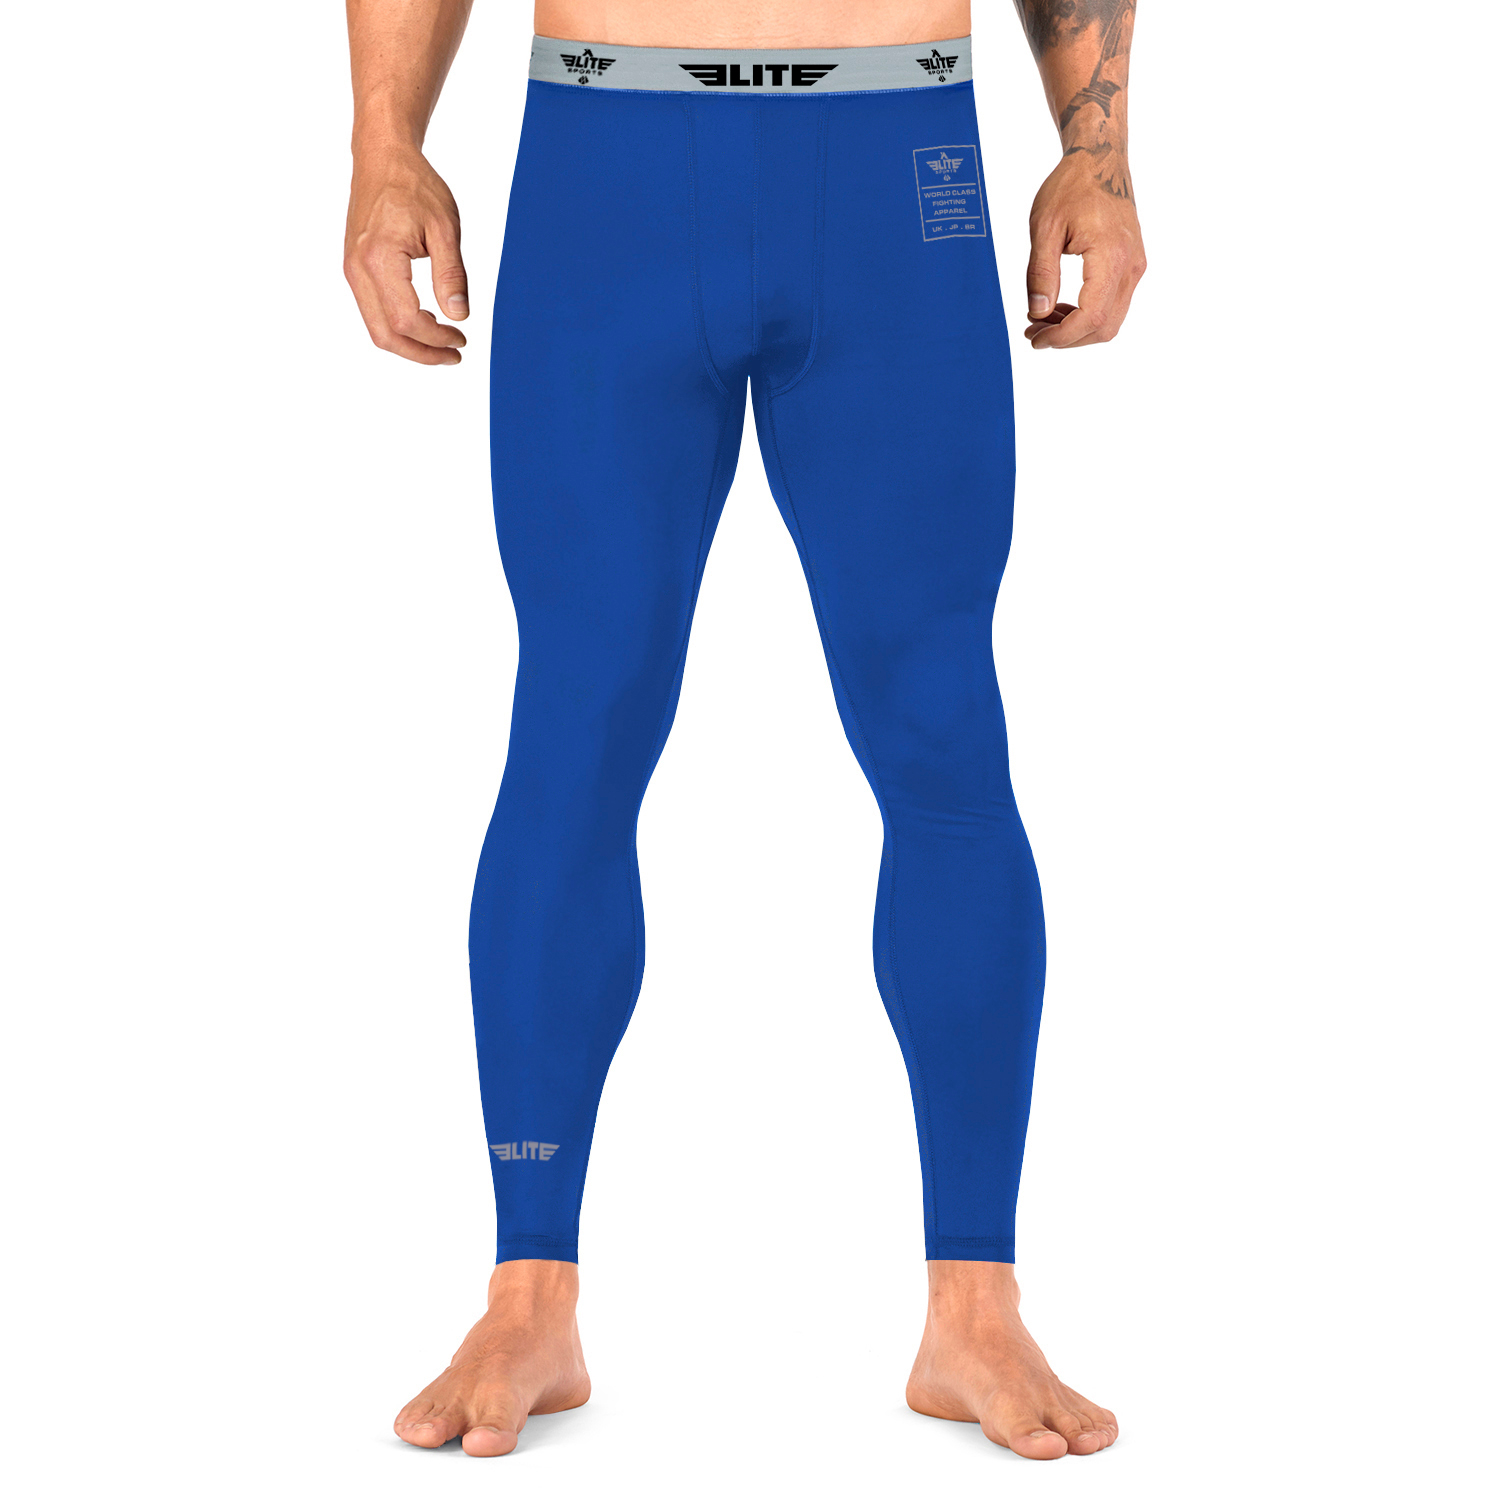 Elite Sports Plain Blue Compression Boxing Spat Pants